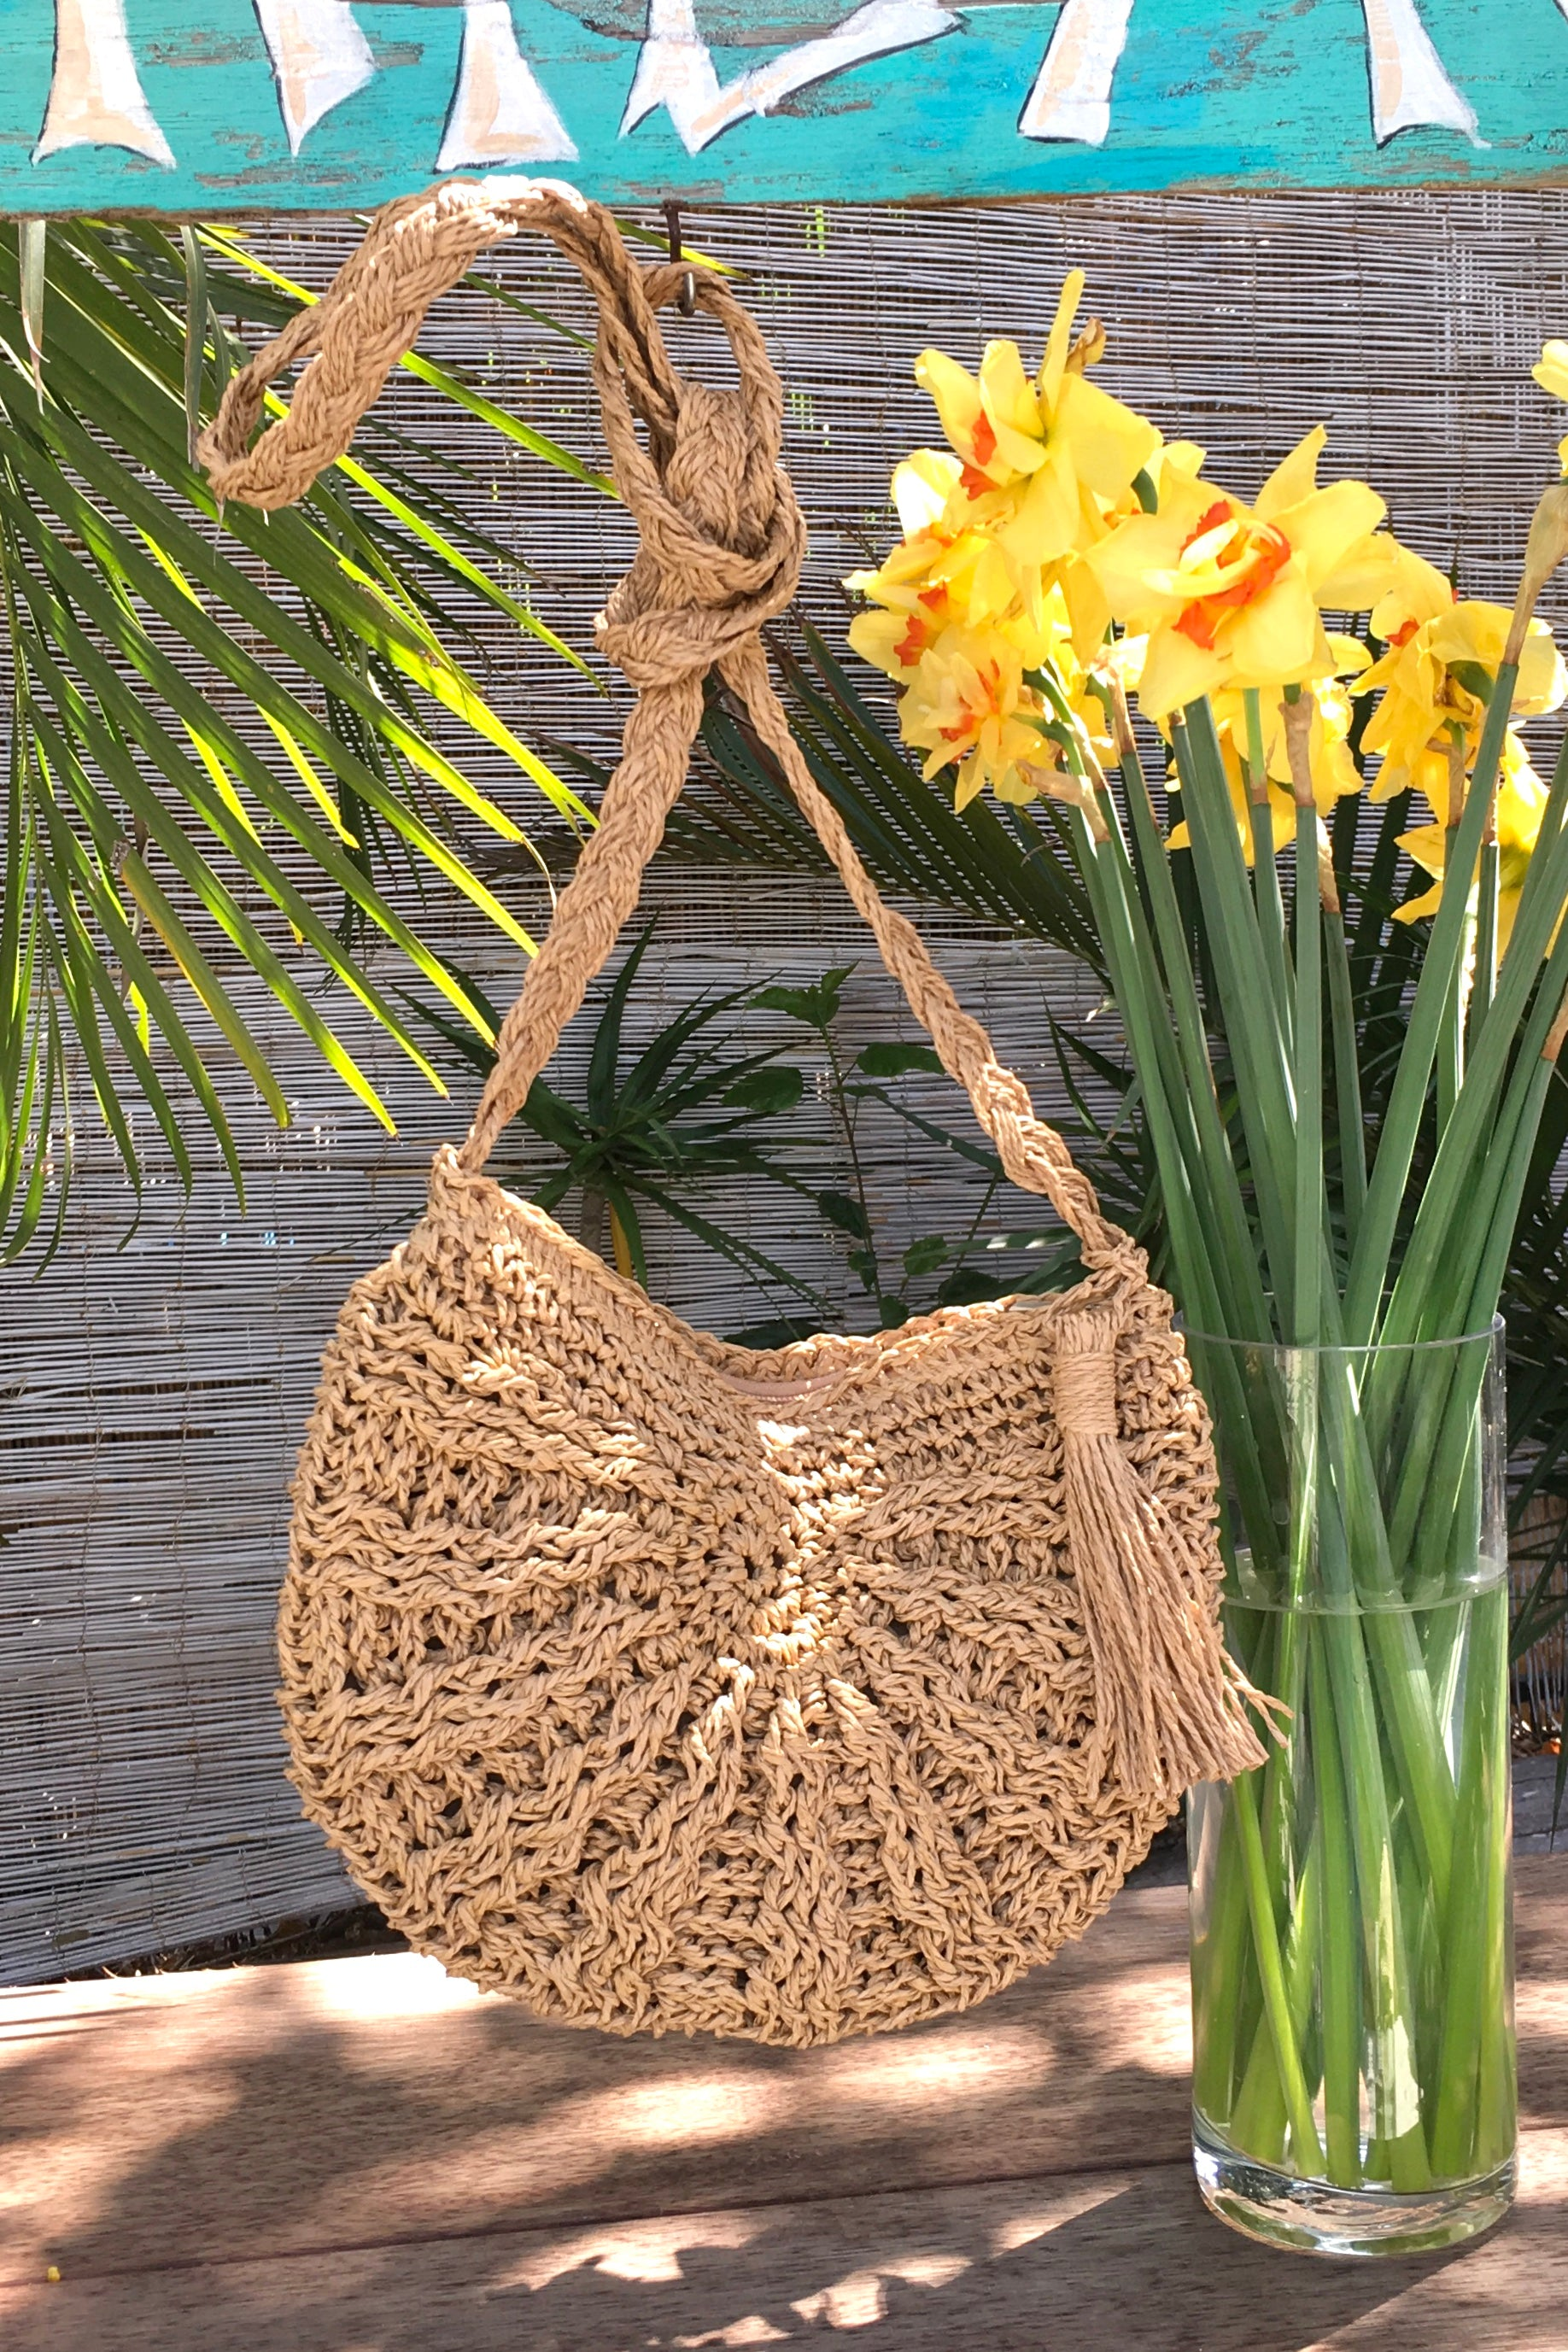 the perfect little woven straw shoulder bag to hold your phone, wallet, keys